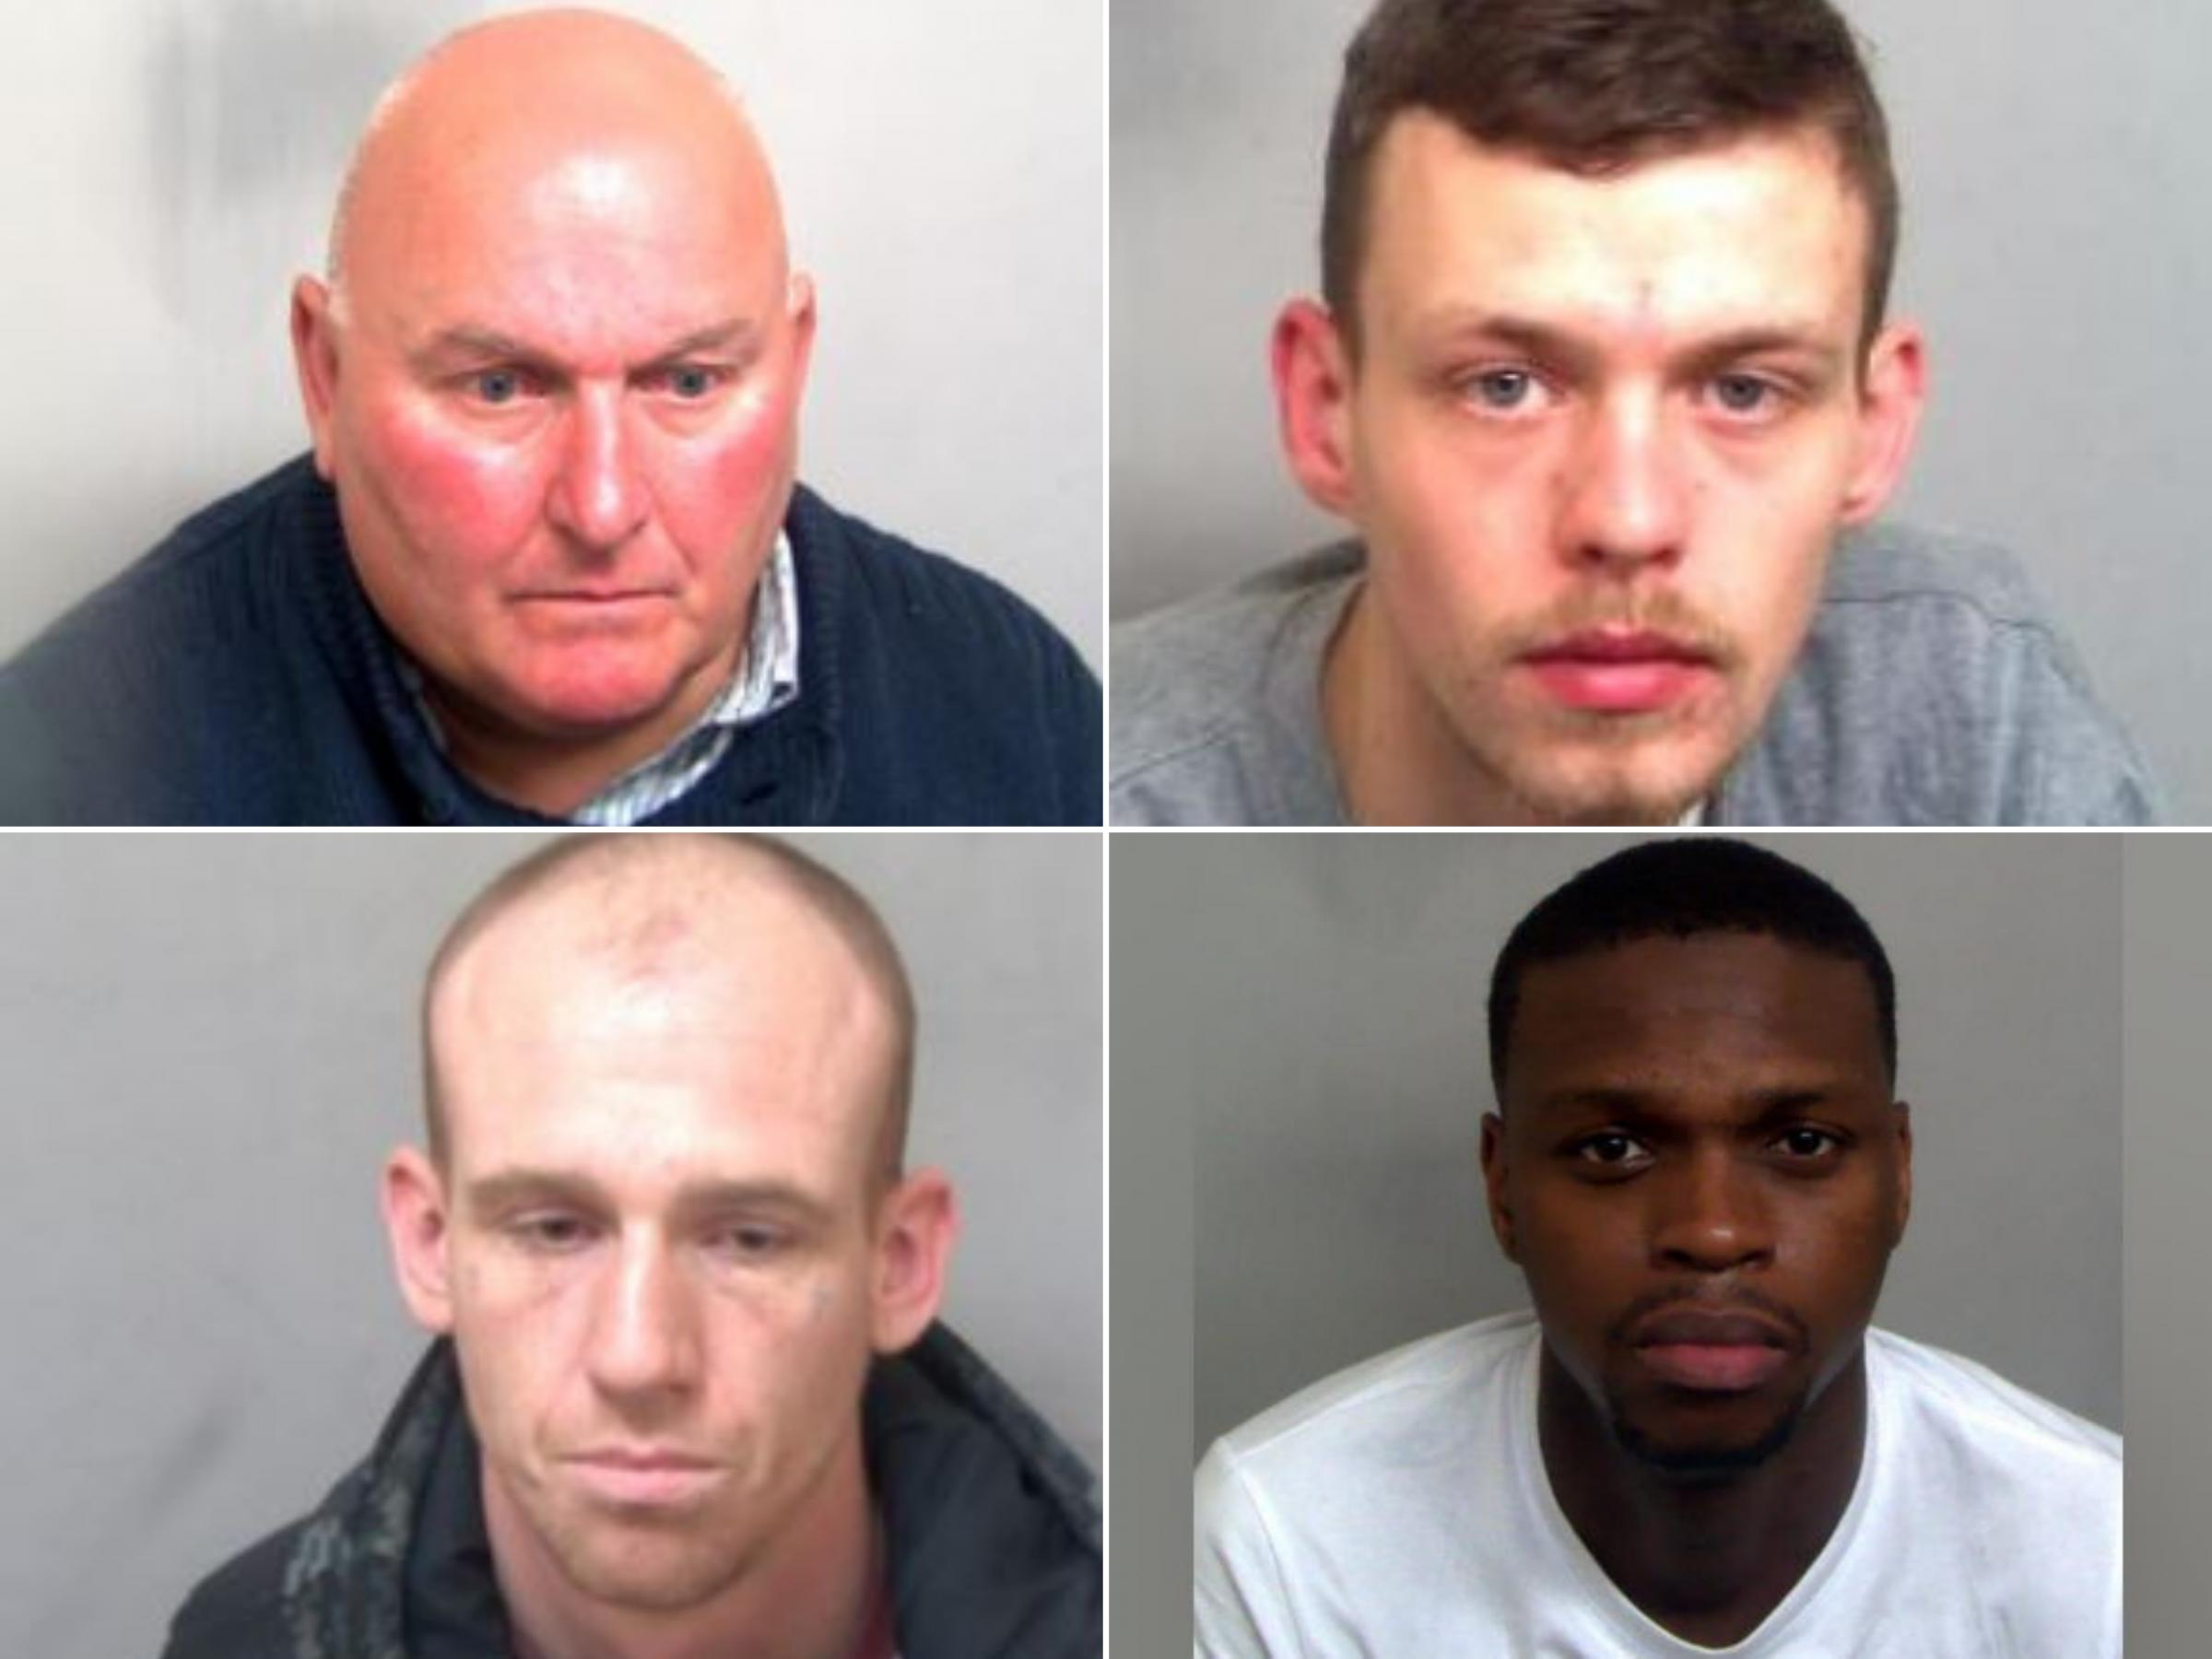 Jailed in July: The north Essex criminals locked up this month